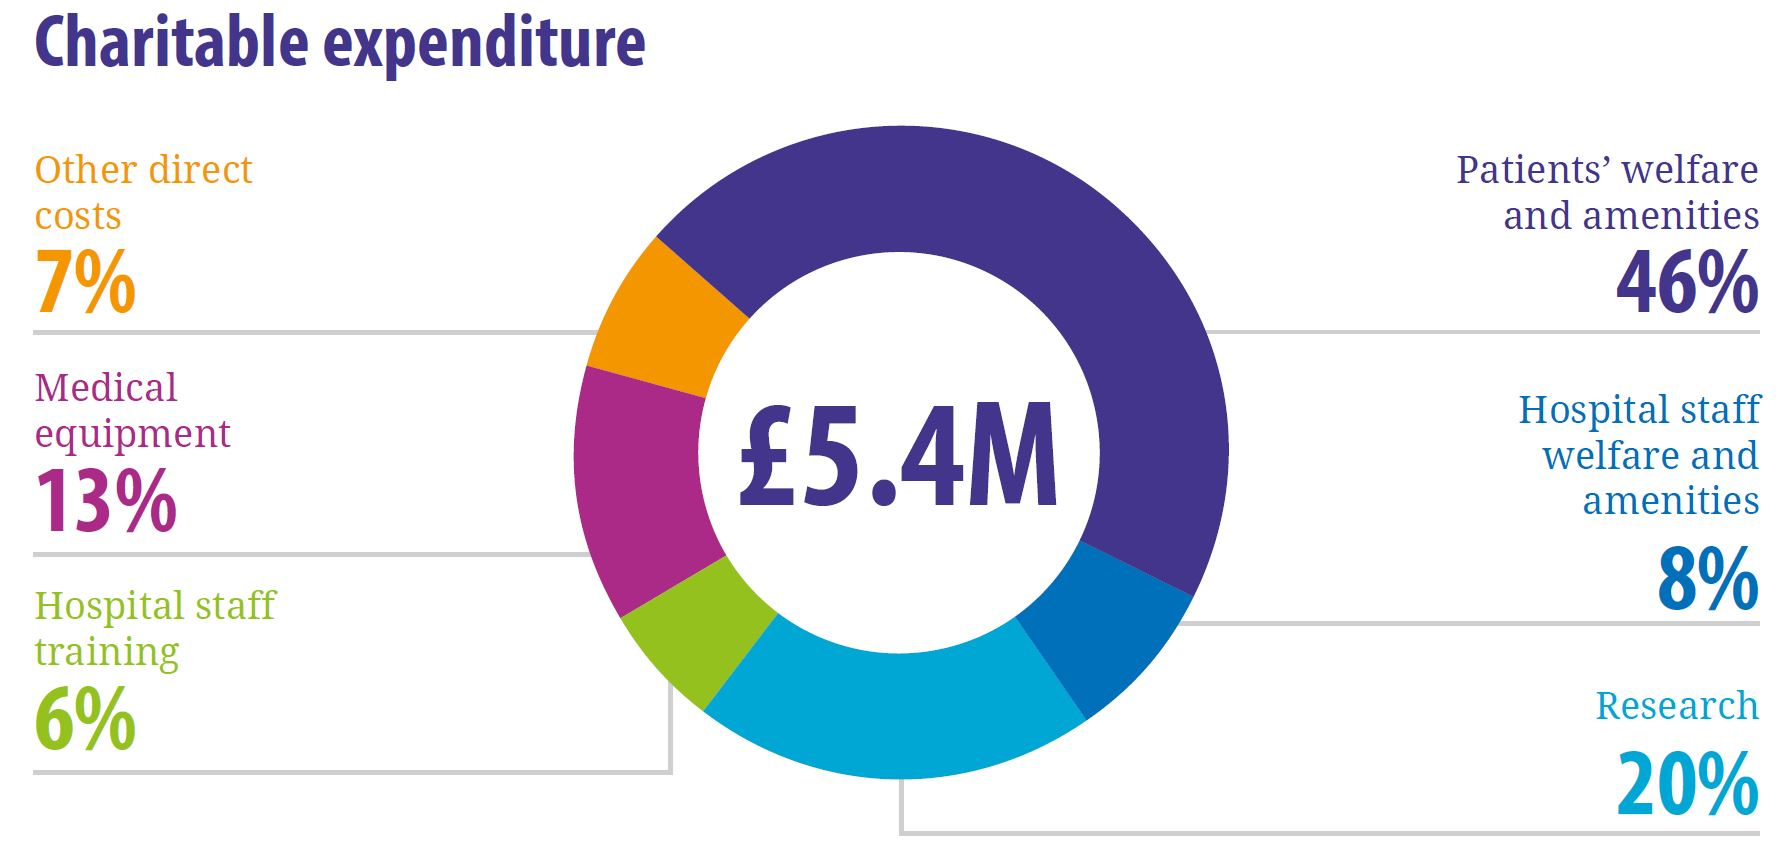 Charitable expenditure 2019-20